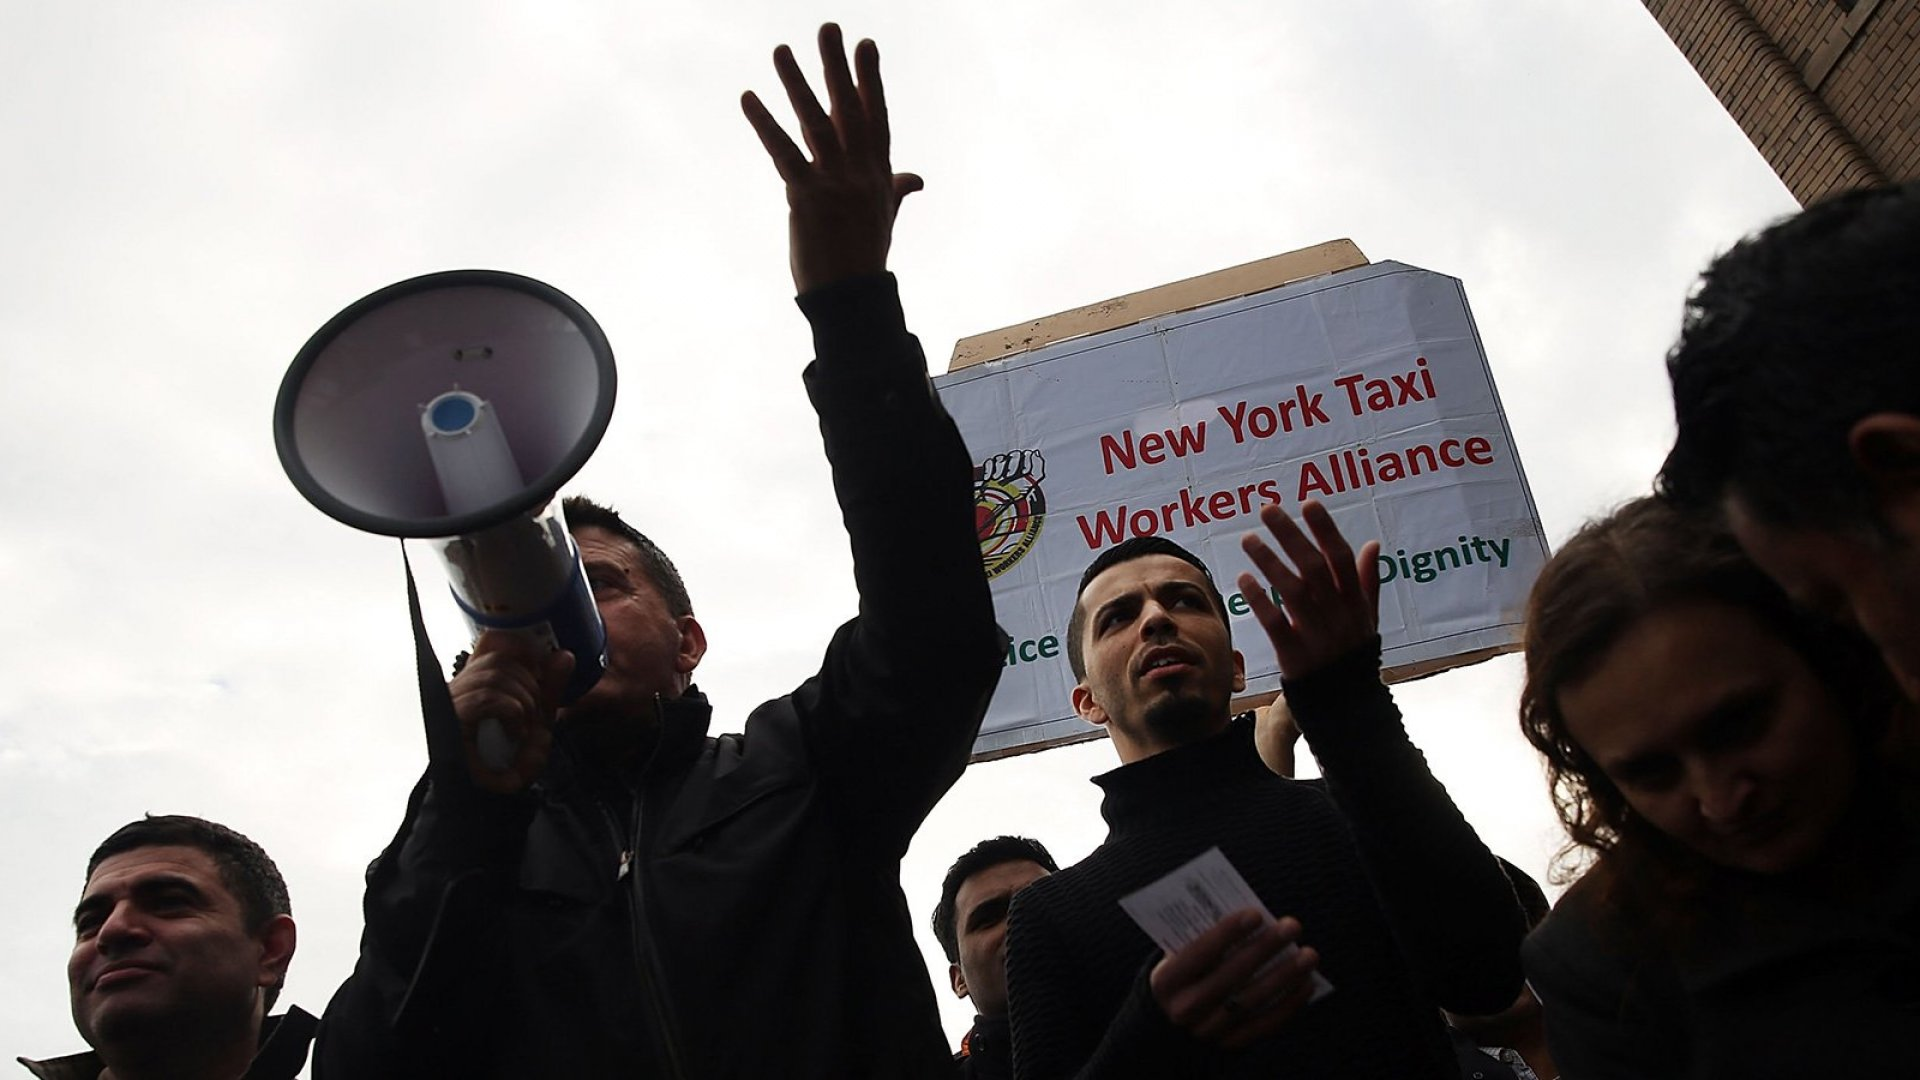 Uber driver representatives speak out at a protest in New York City in 2016.